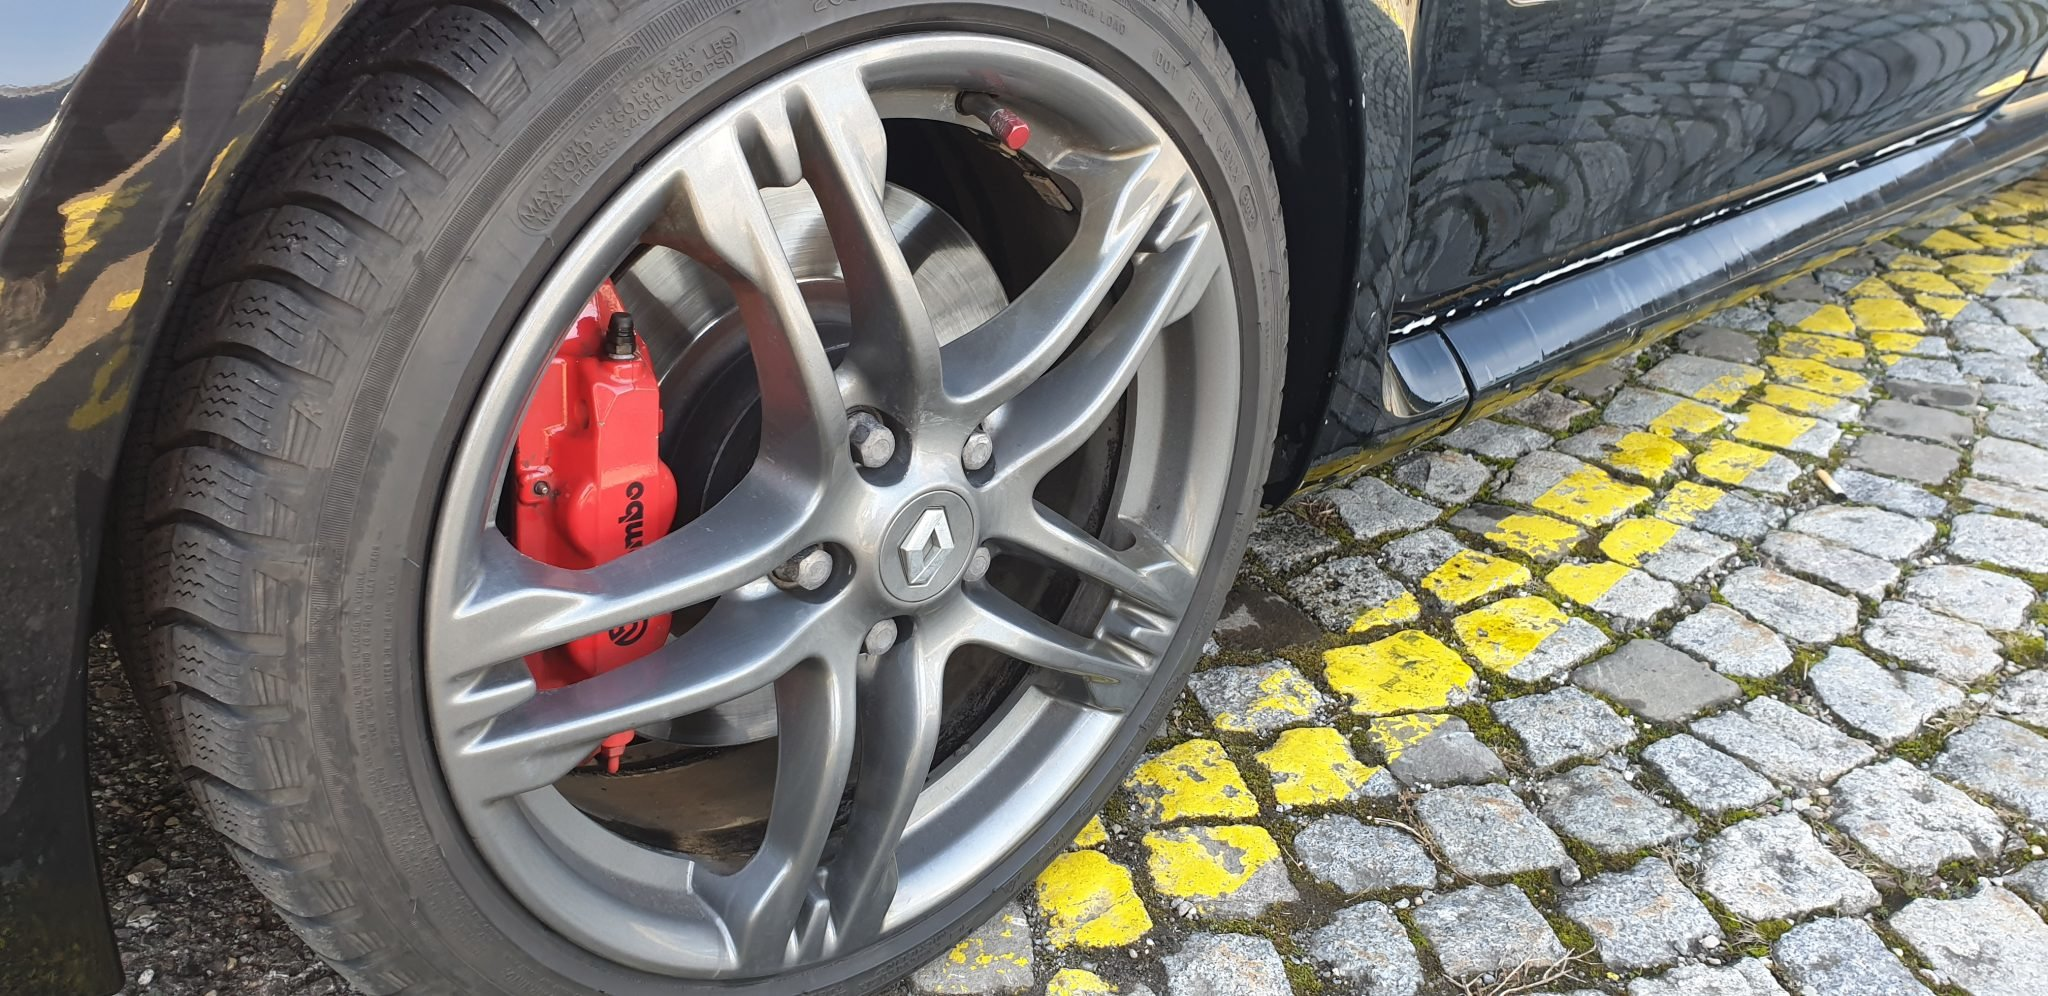 2012 Renault Clio For Sale (picture 5 of 6)